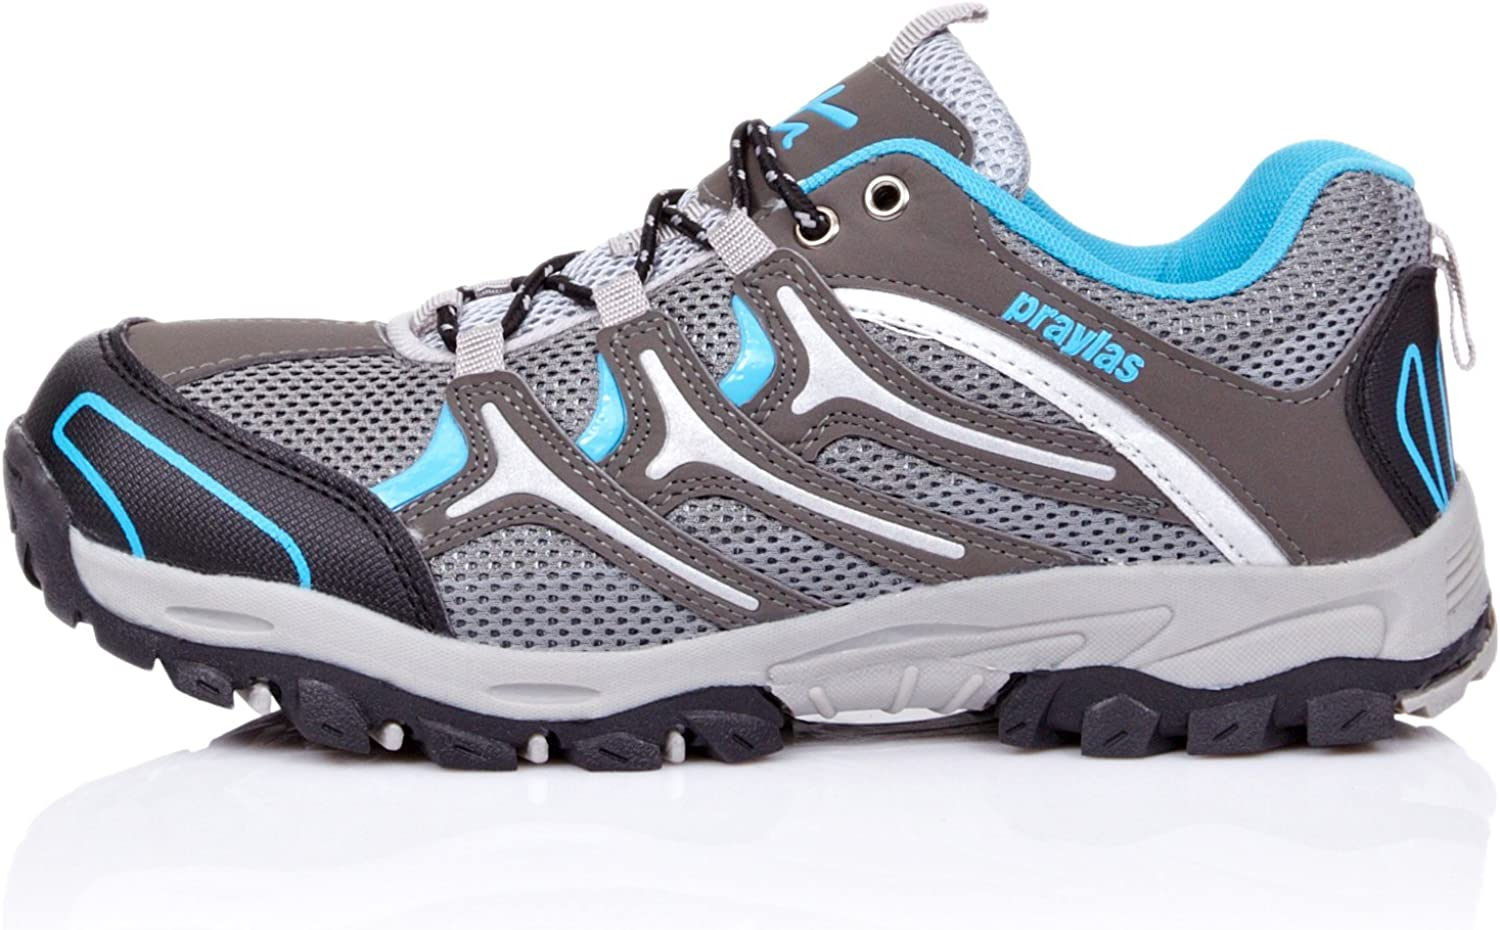 Praylas Zapatillas Trekking Estornino Gris/Azul EU 45: Amazon.es: Zapatos y complementos